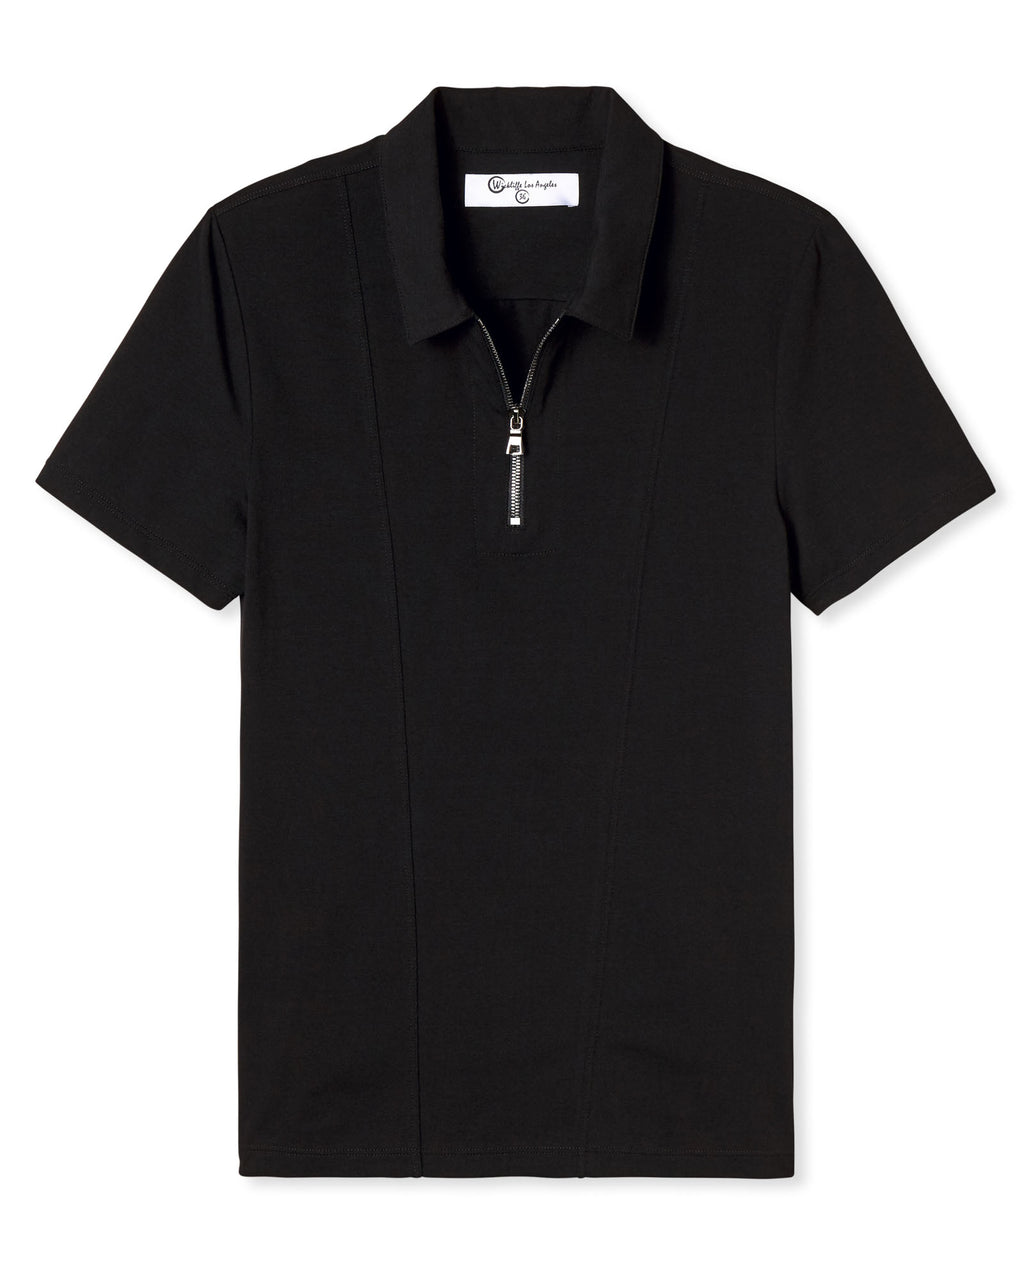 KENNETH ZIPPER POLO